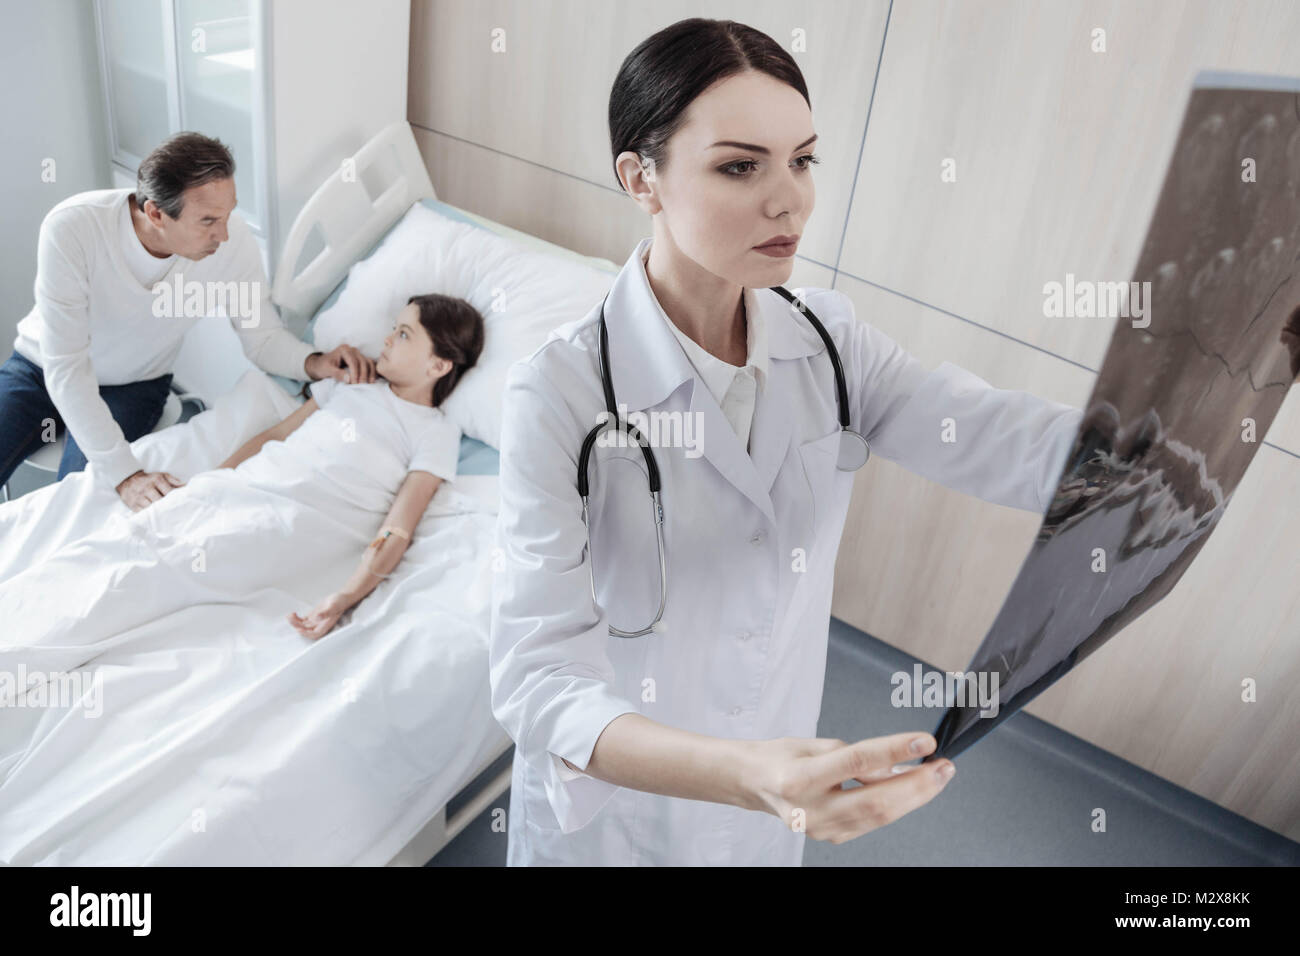 Serious physician examining computed tomography scans of little girl - Stock Image